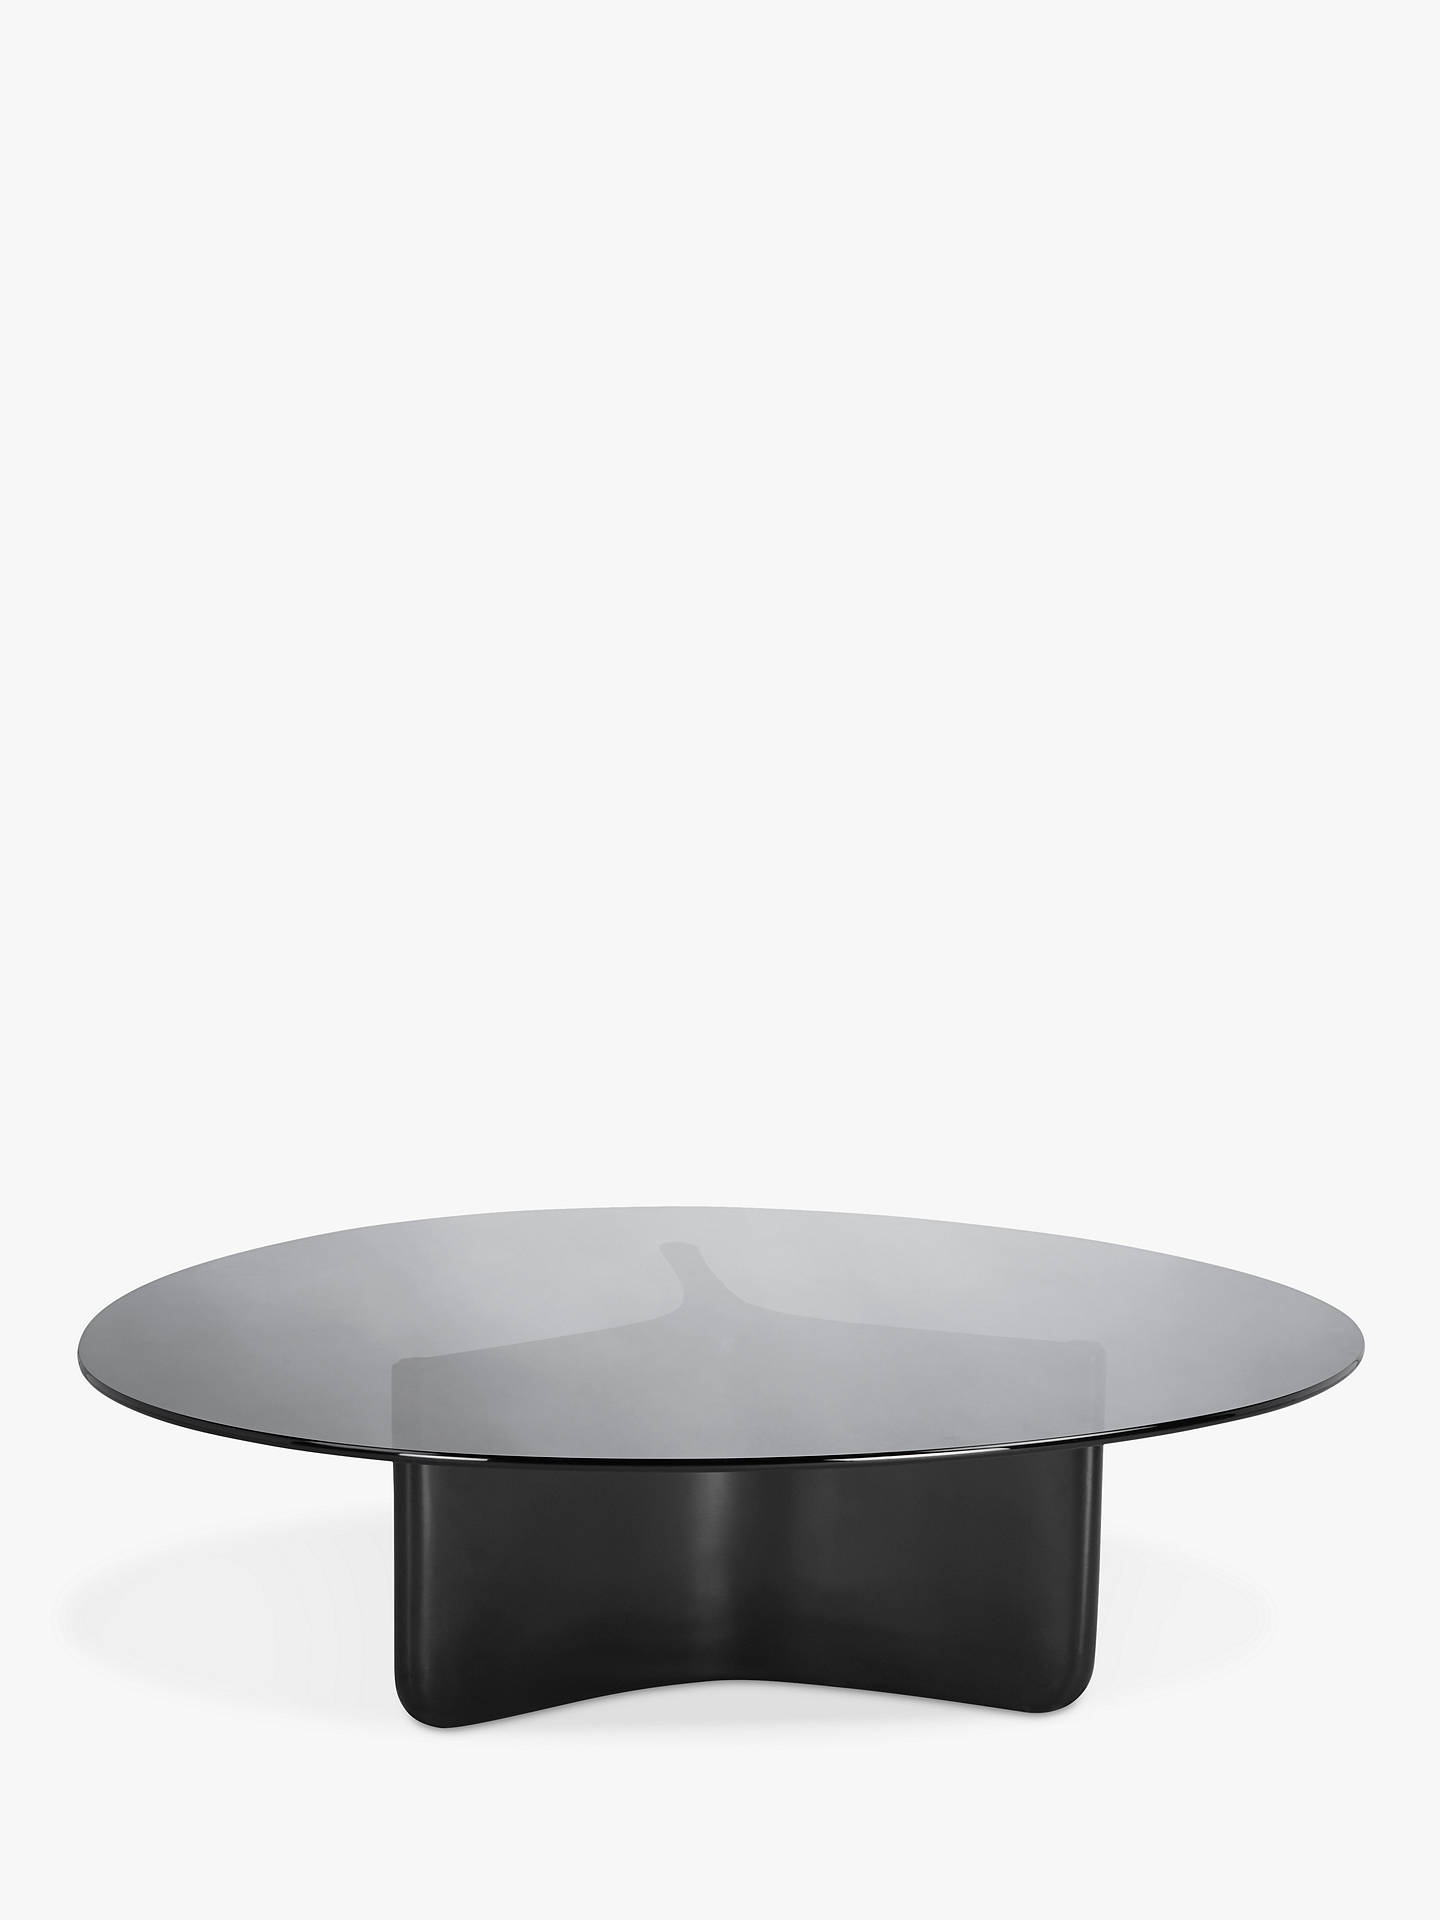 Doshi Levien For John Lewis Open Home Sangam Coffee Table